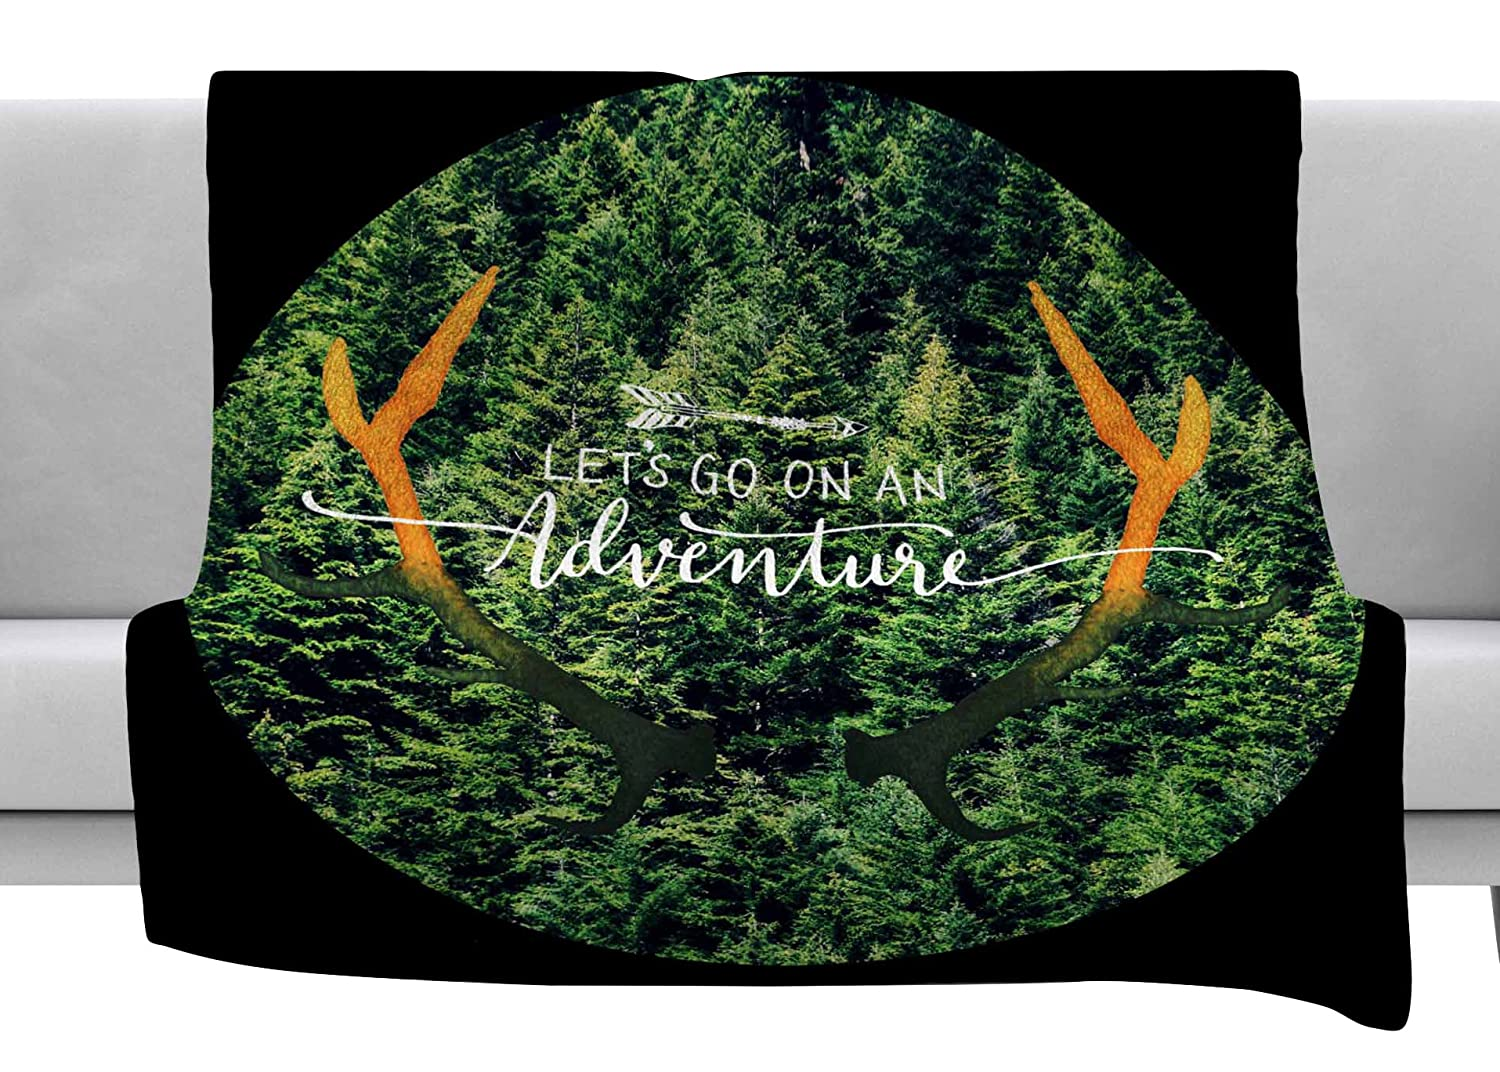 80 x 60 Fleece Blanket Kess InHouse Robin Dickinson Adventure Green Black Photography Throw